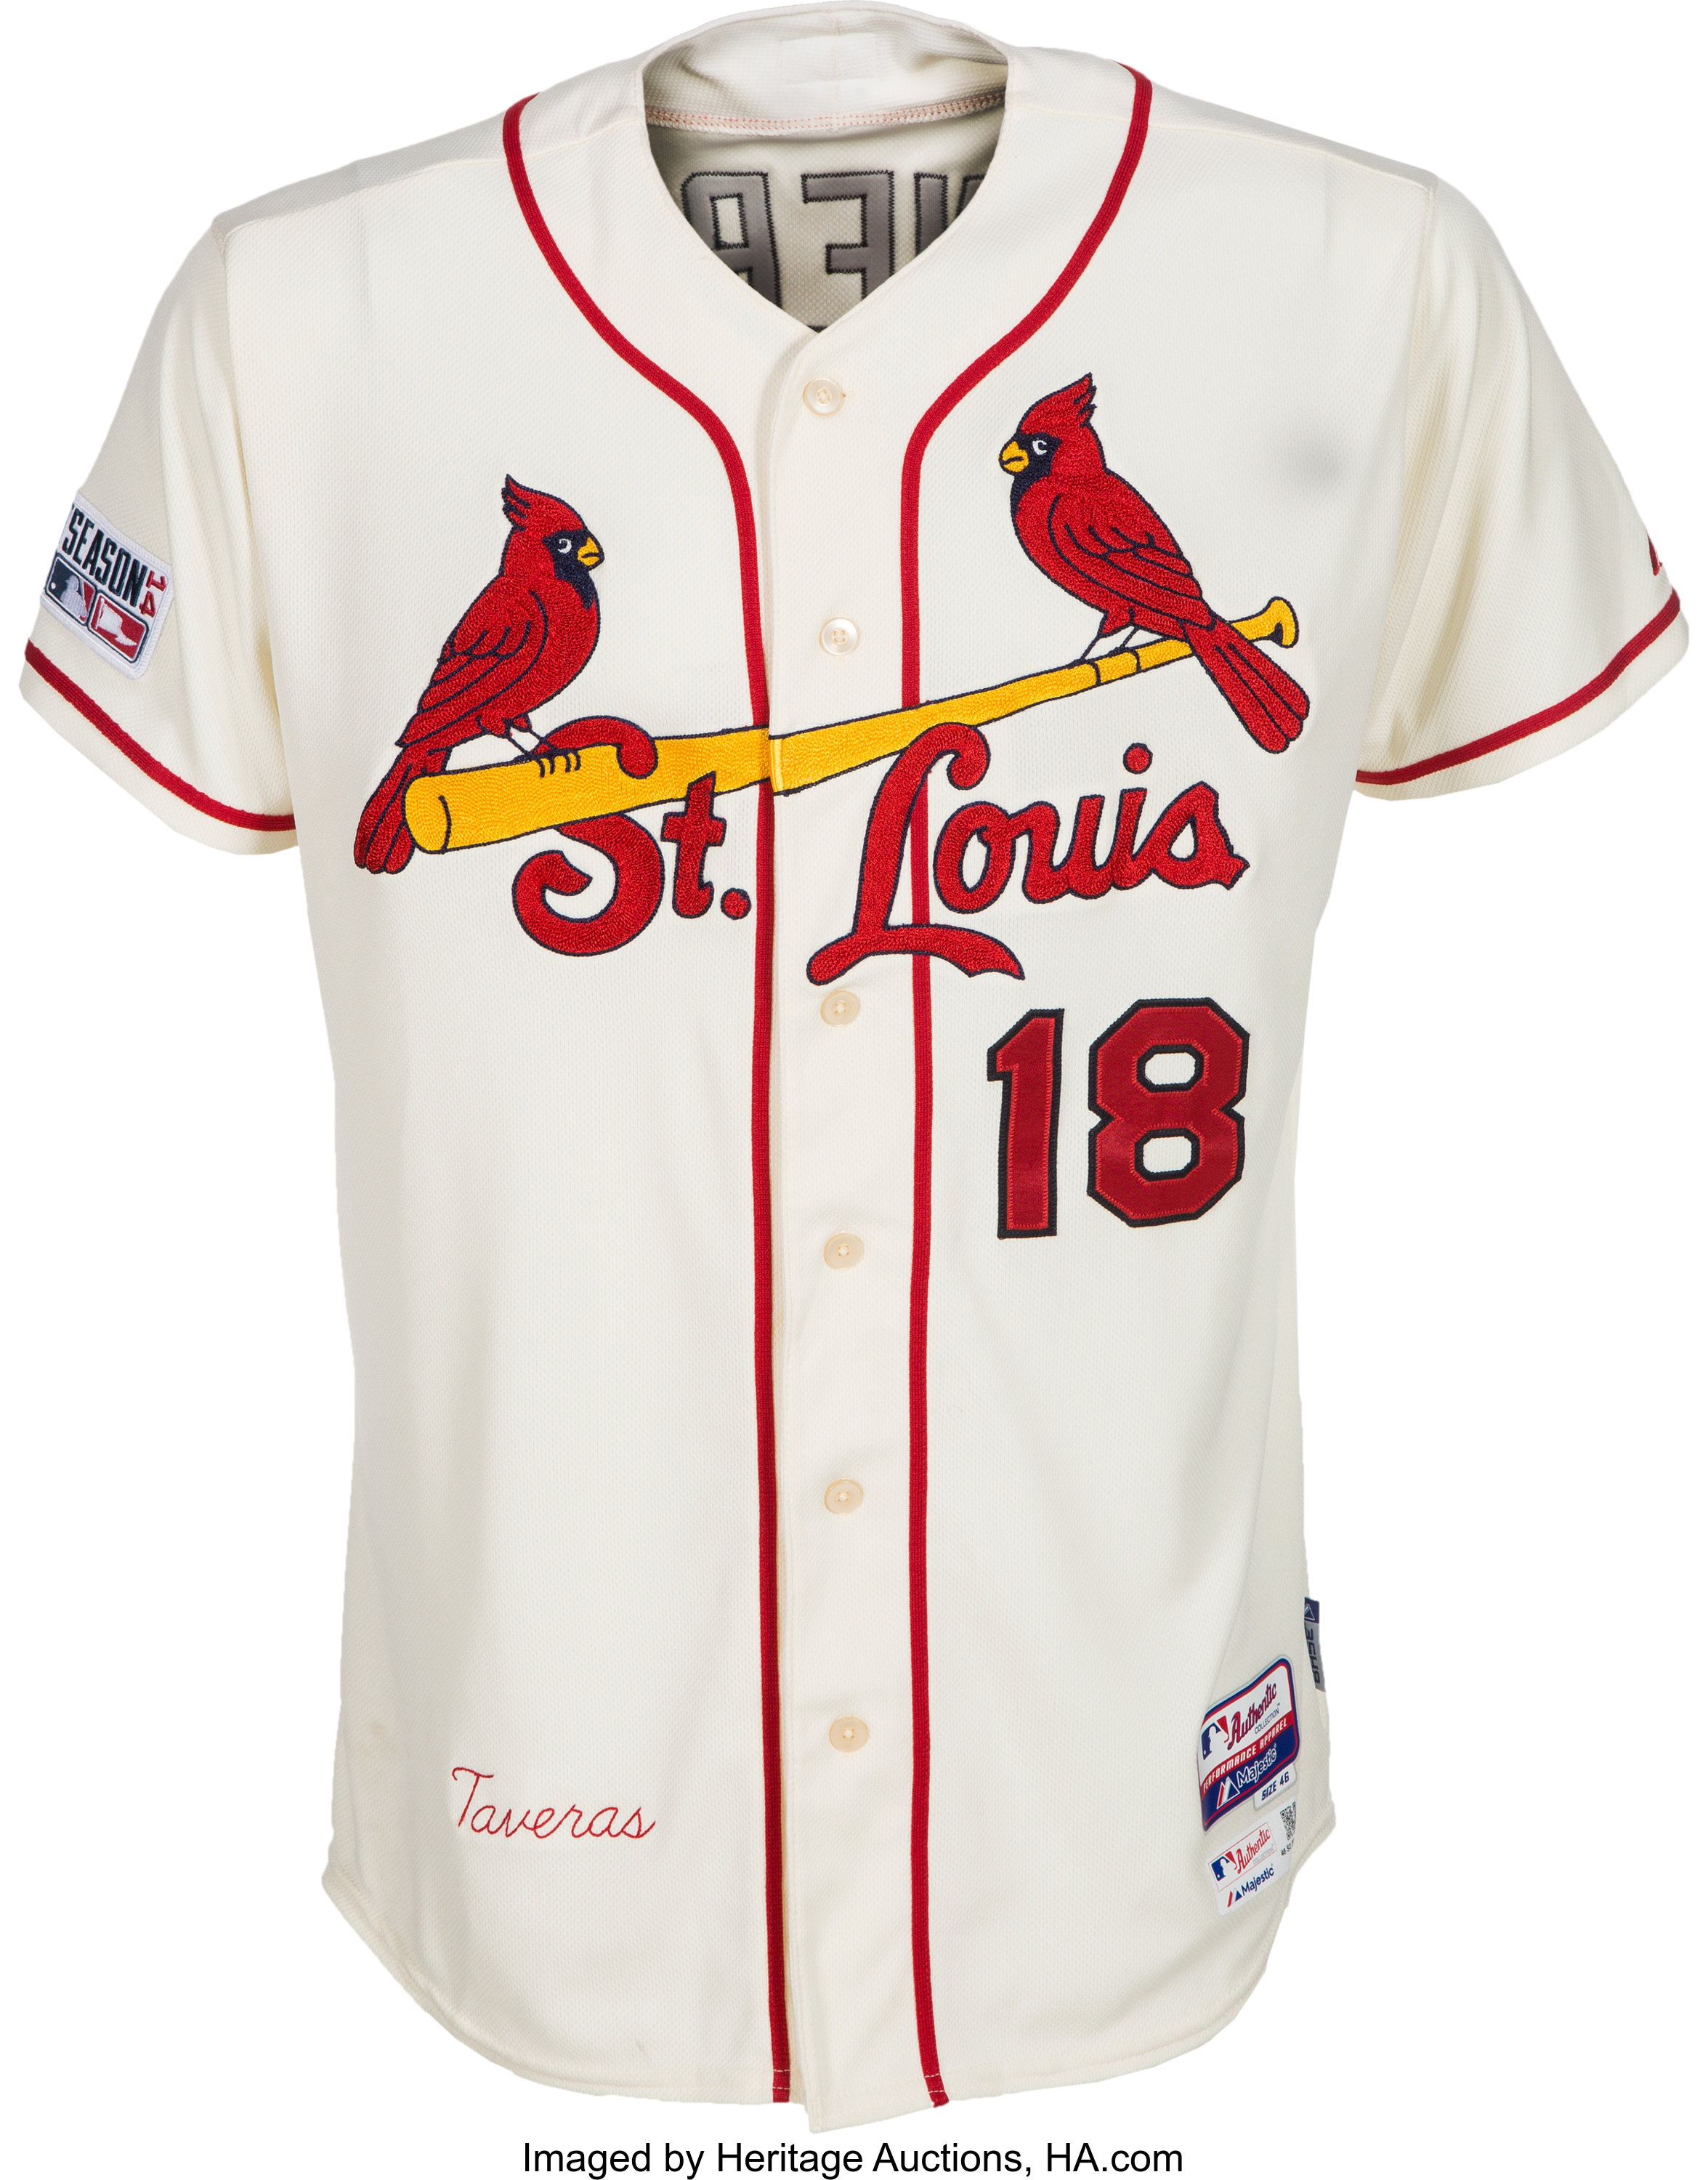 f4e7eab1 2014 Oscar Taveras Game Worn Signed St. Louis Cardinals Playoffs ...